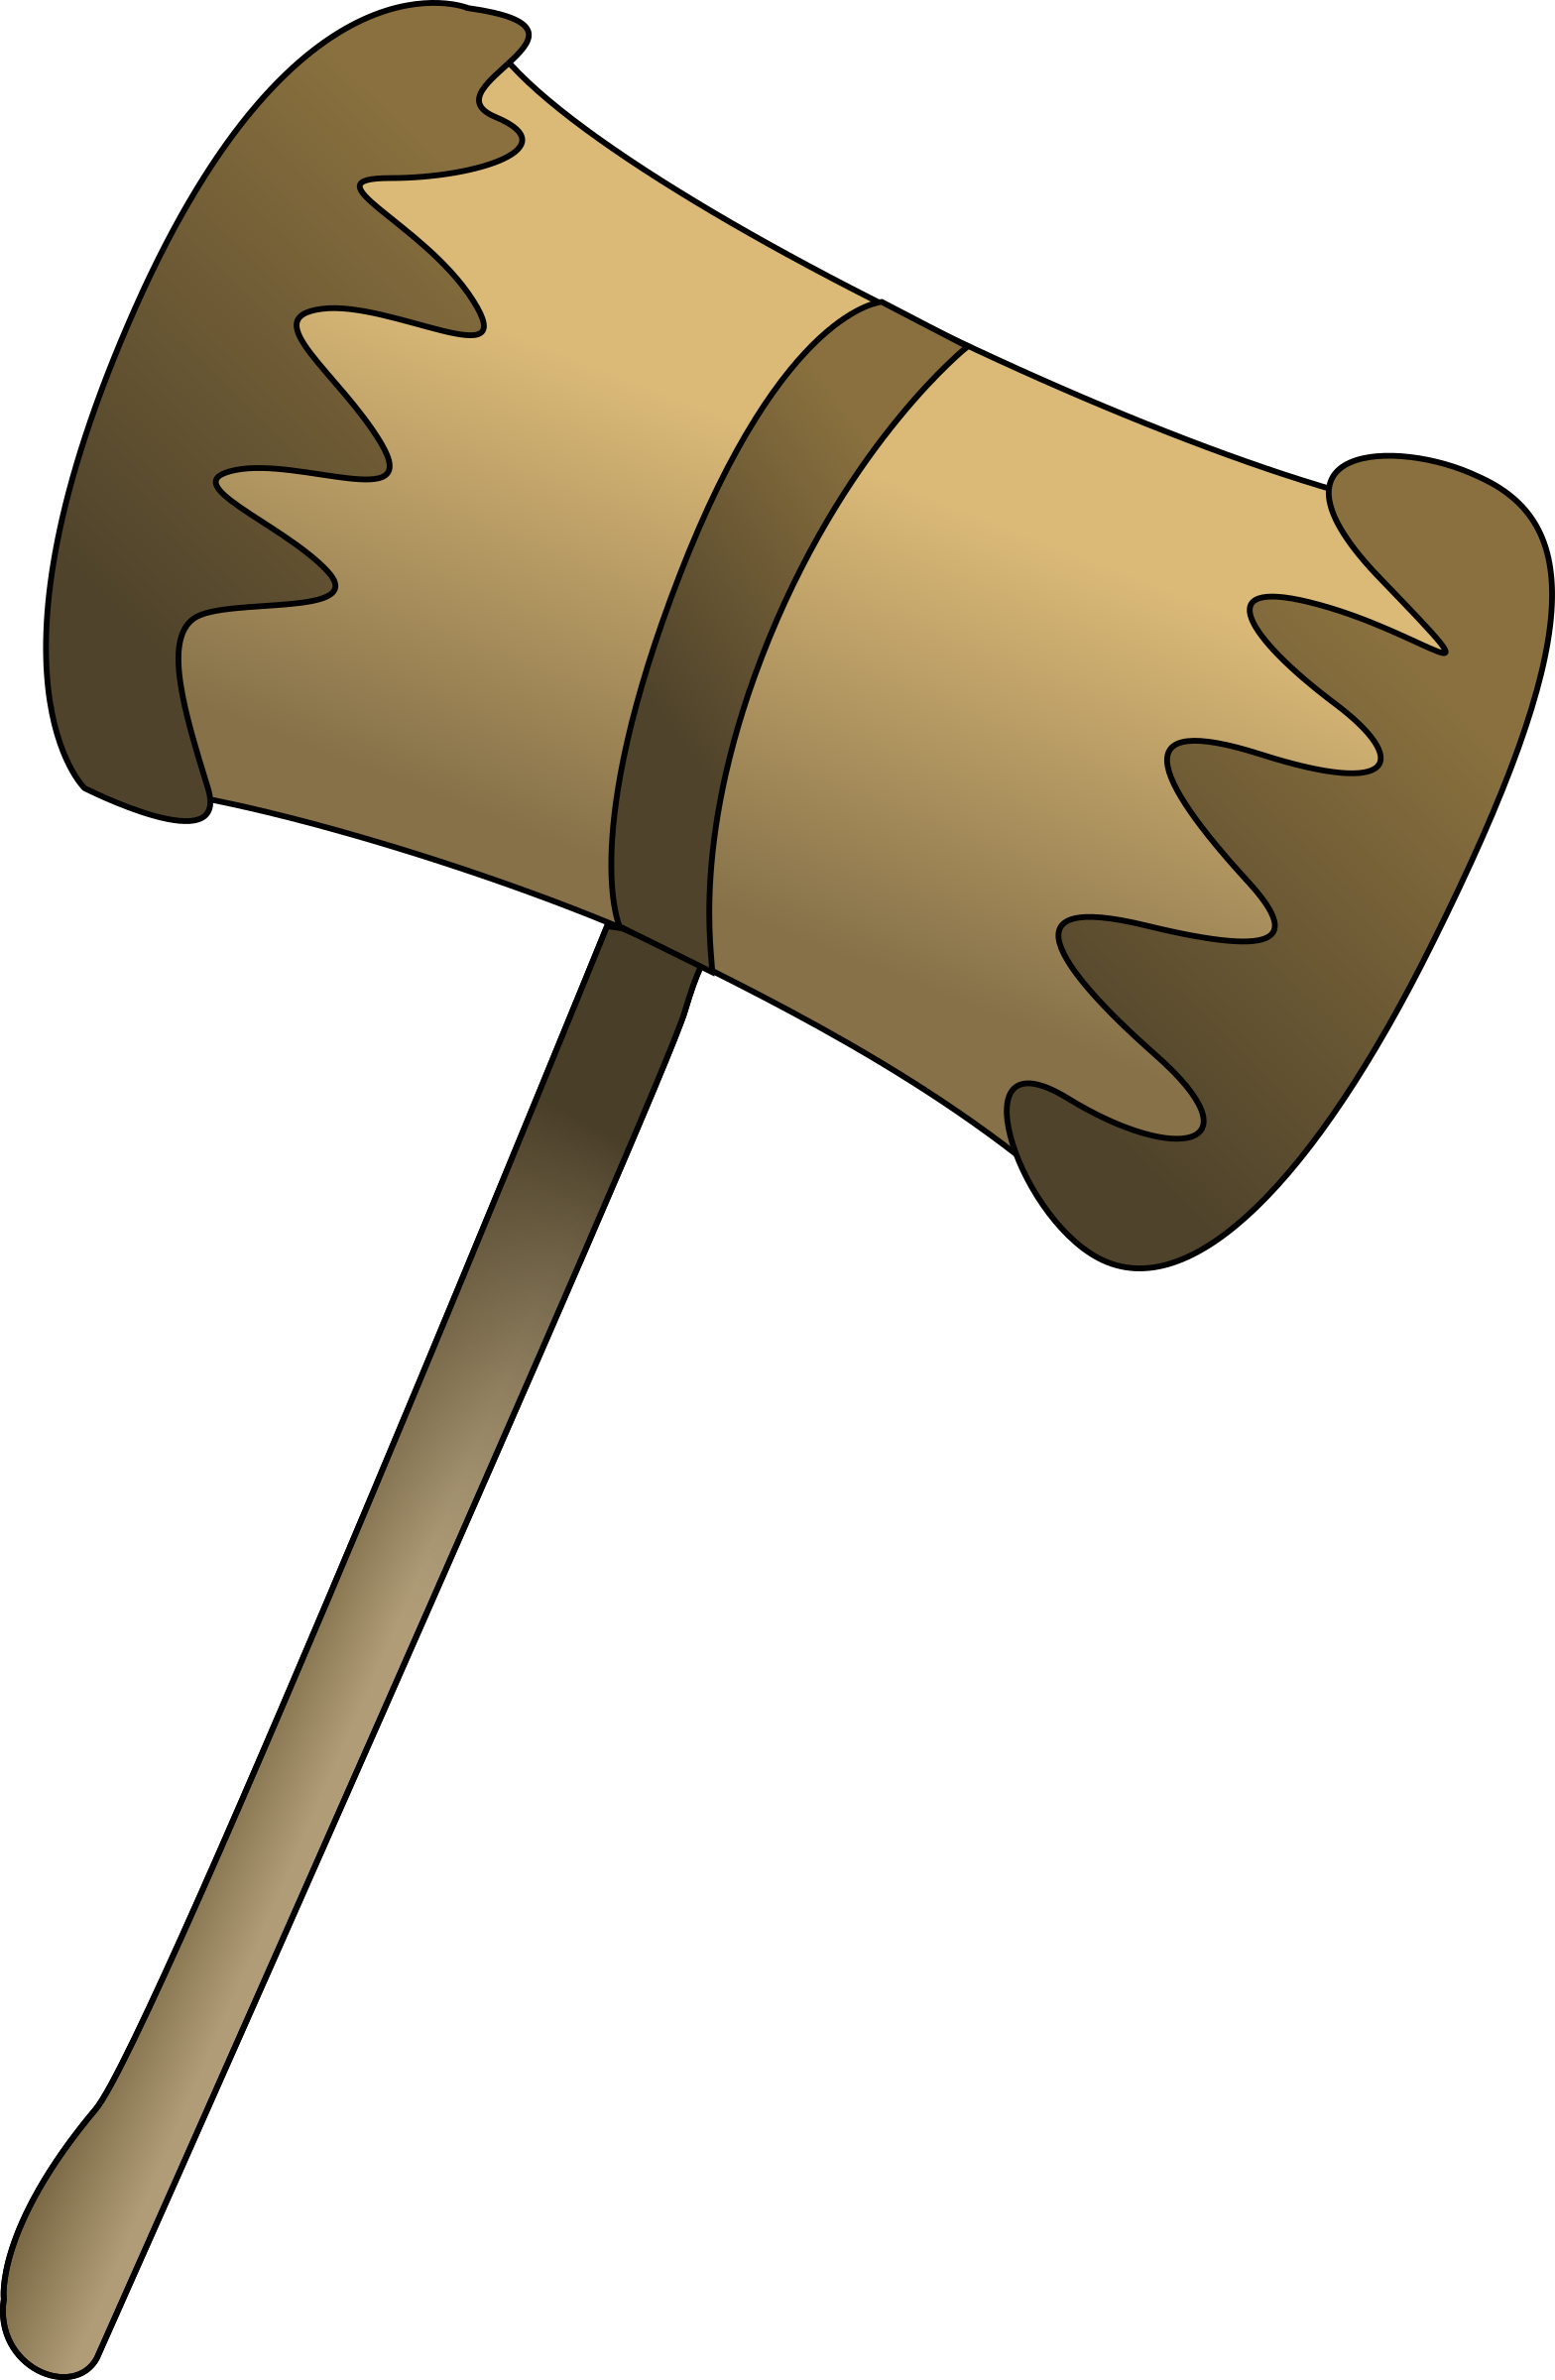 Wooden mallet big image. Clipart hammer animated